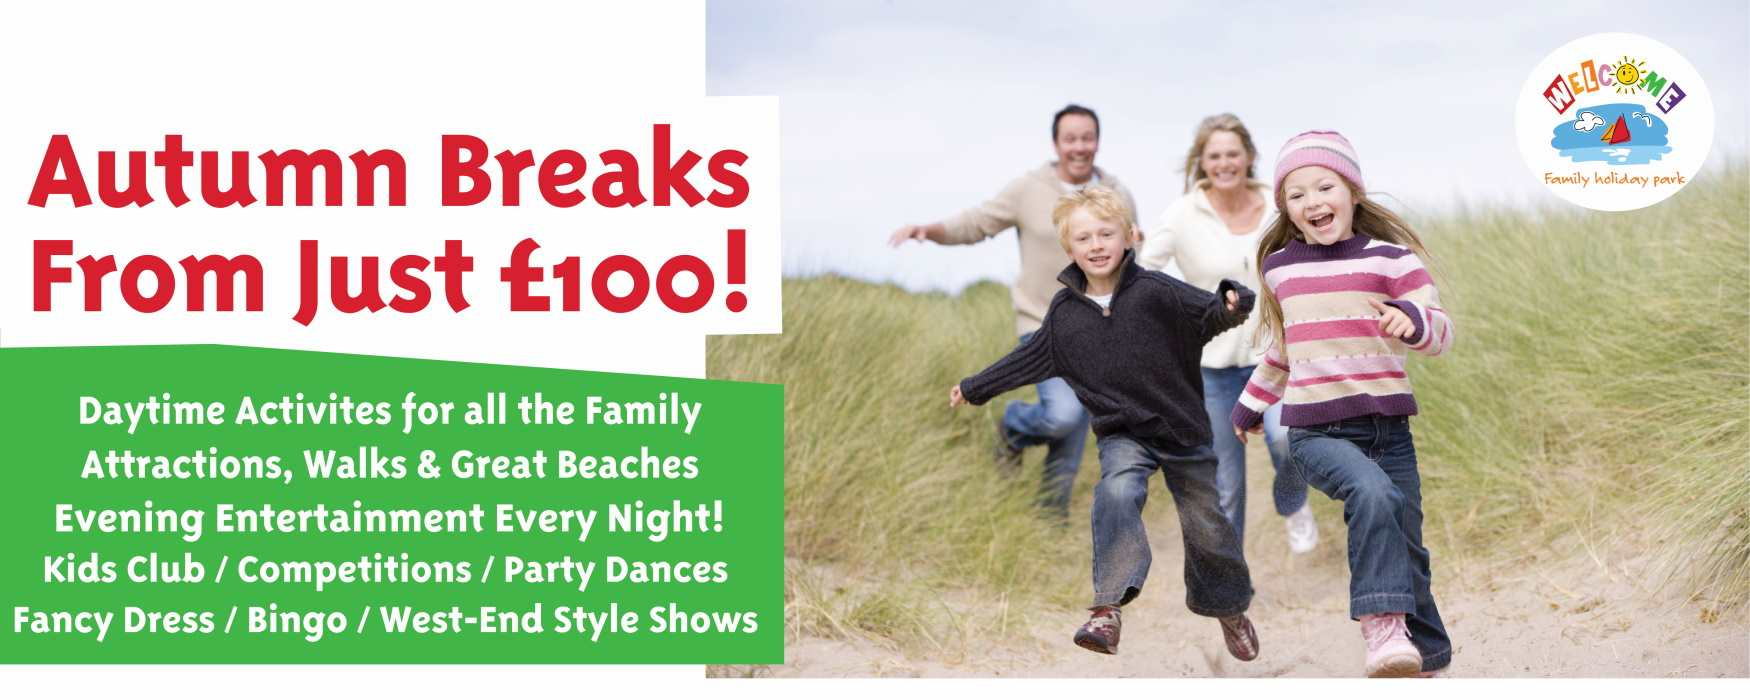 Welcome Family Holiday Park, Dawlish Warren